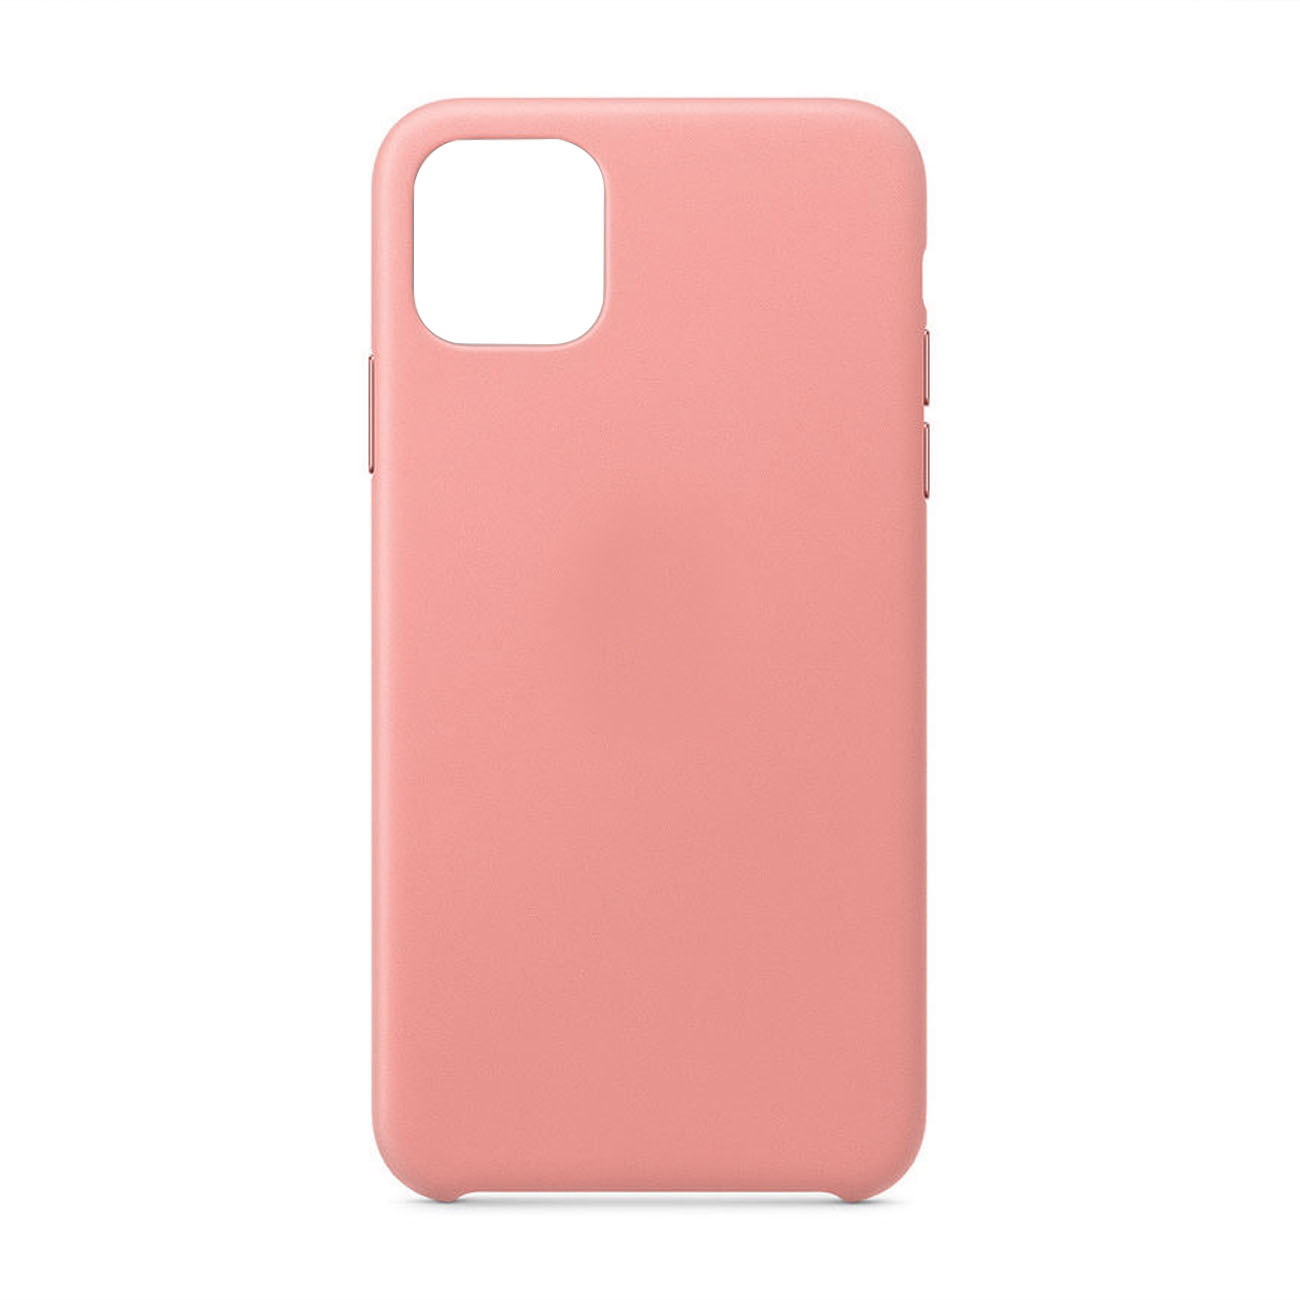 Apple iPhone 11 Pro Gummy Cases In Pink